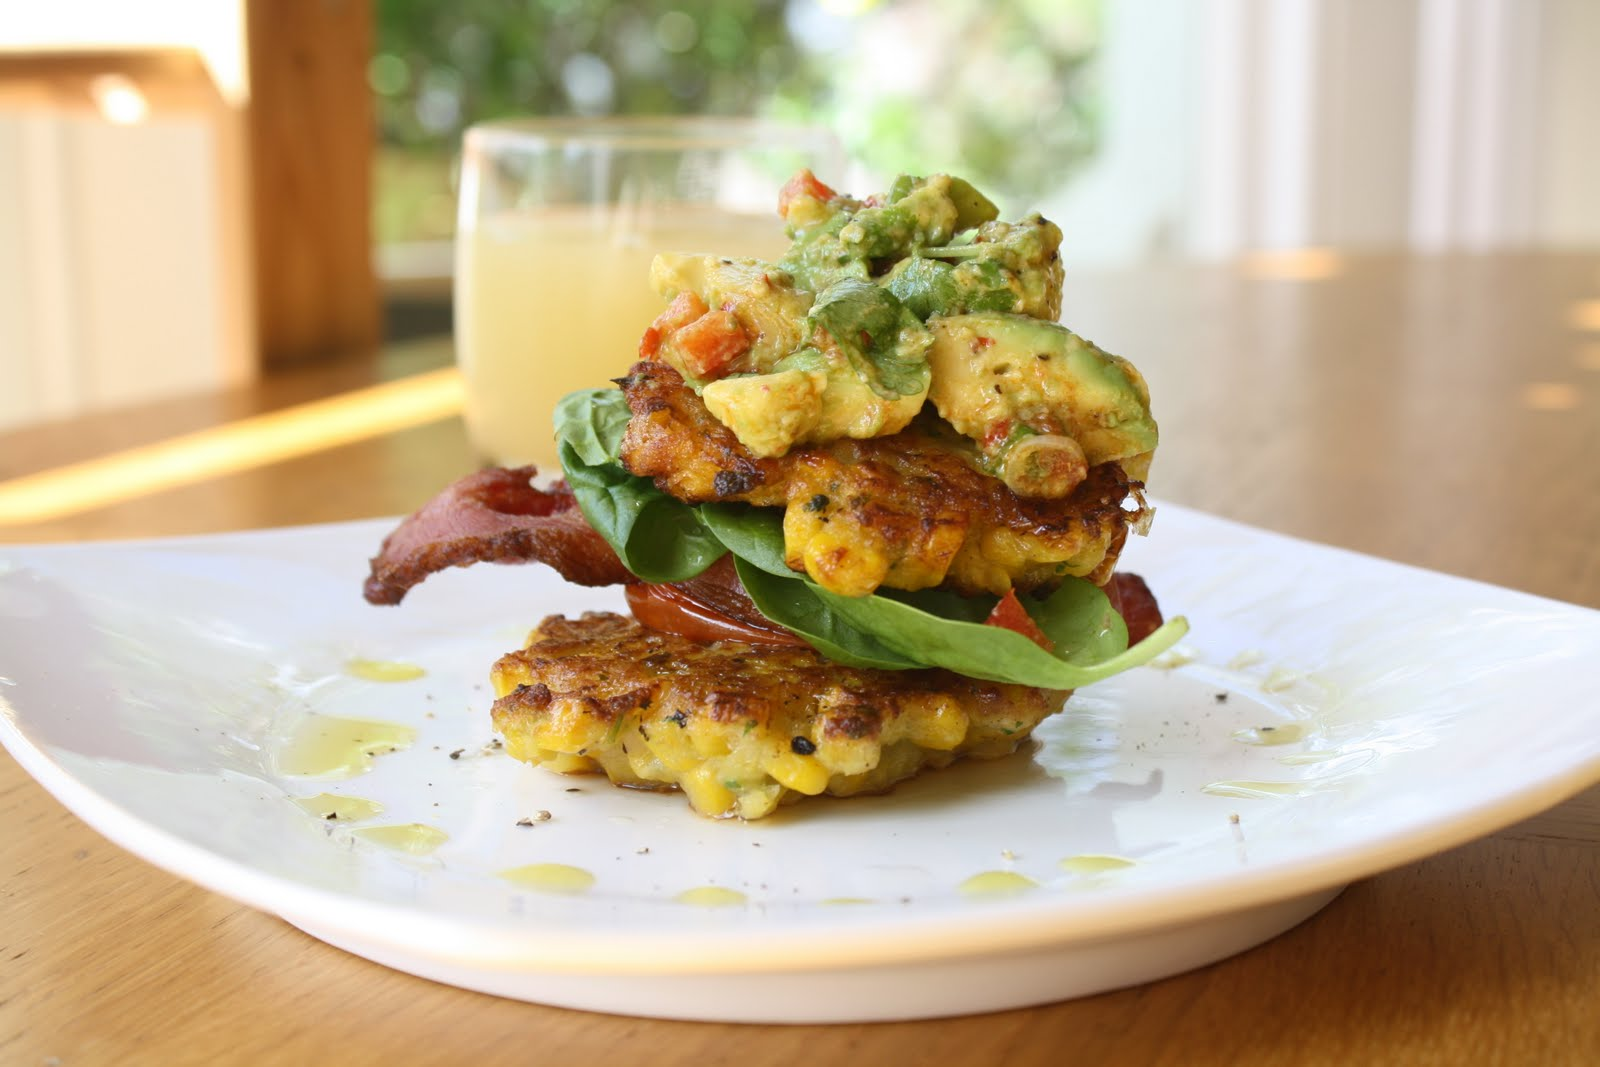 ... : CORN FRITTERS WITH CRISPY BACON, ROASTED TOMATOES & AVOCADO SALSA